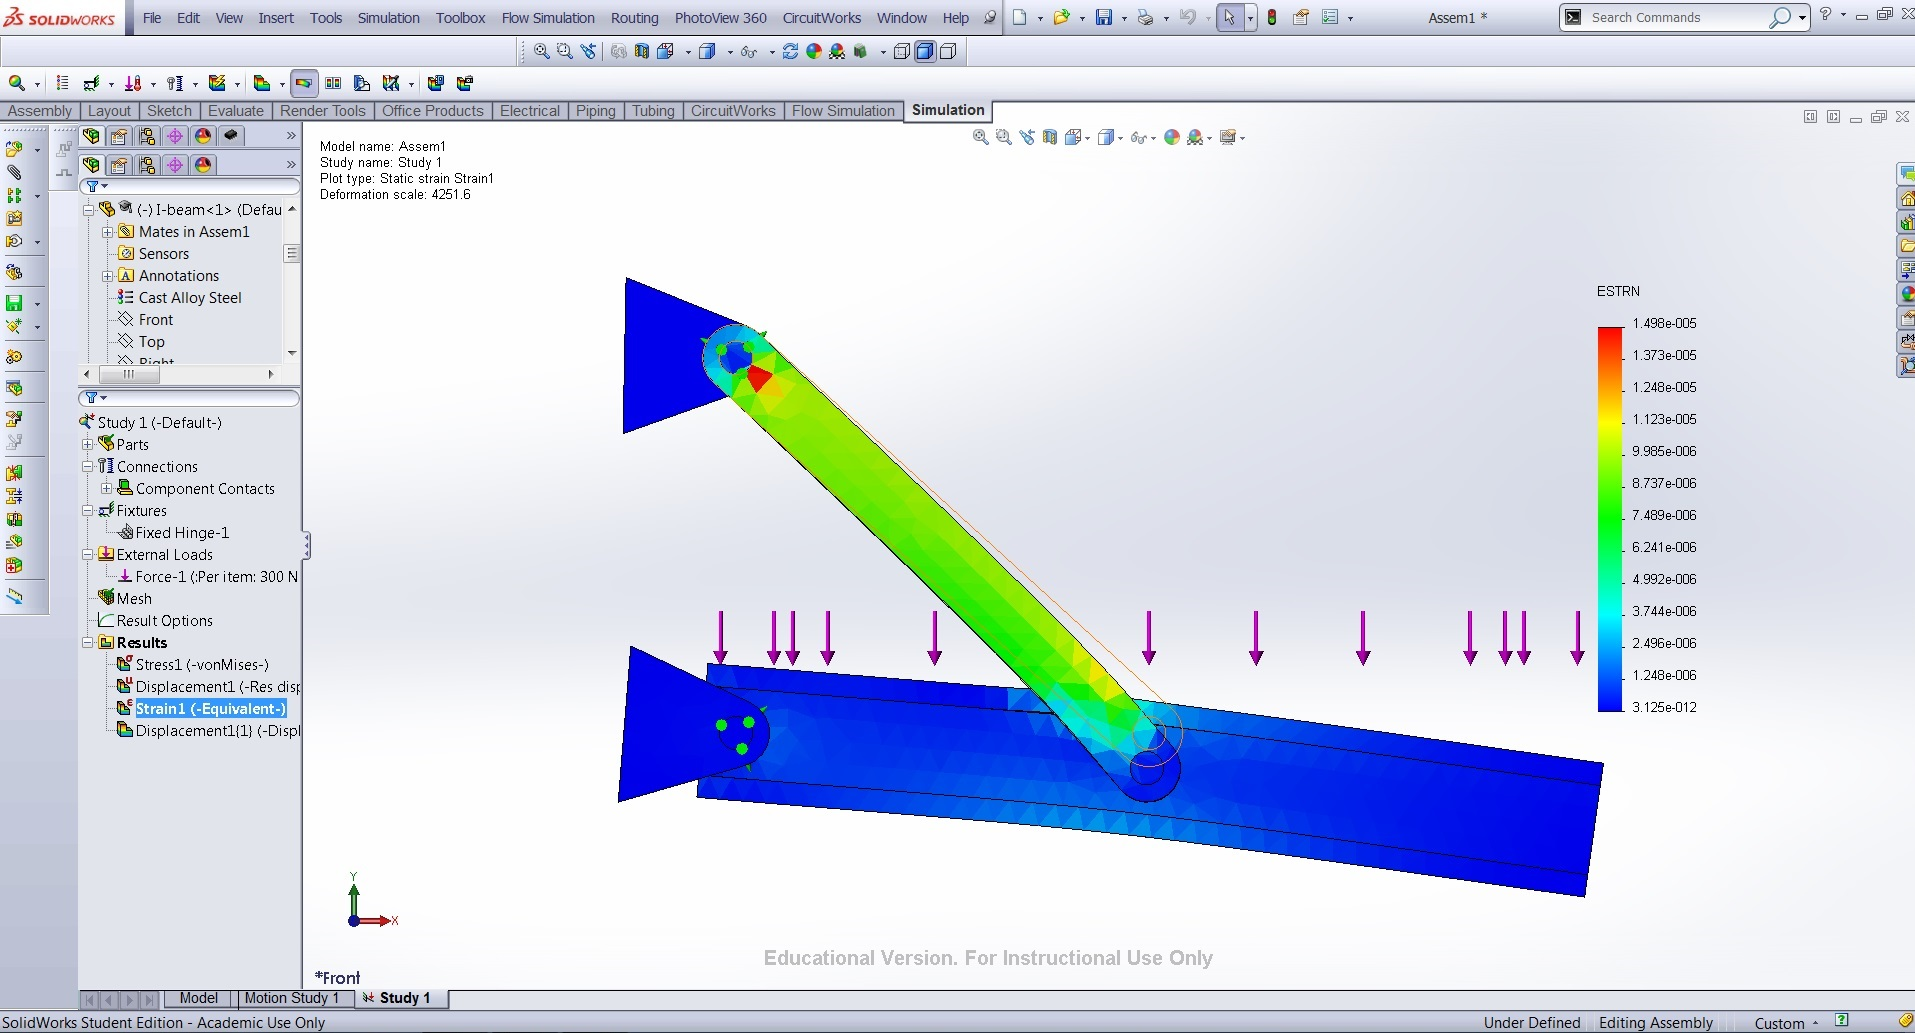 Use Solidworks In Stress Analysis Measure Stresses Strains And Drawing Shear Force Bending Moment Diagrams Strain On I Beam Supporting Rods